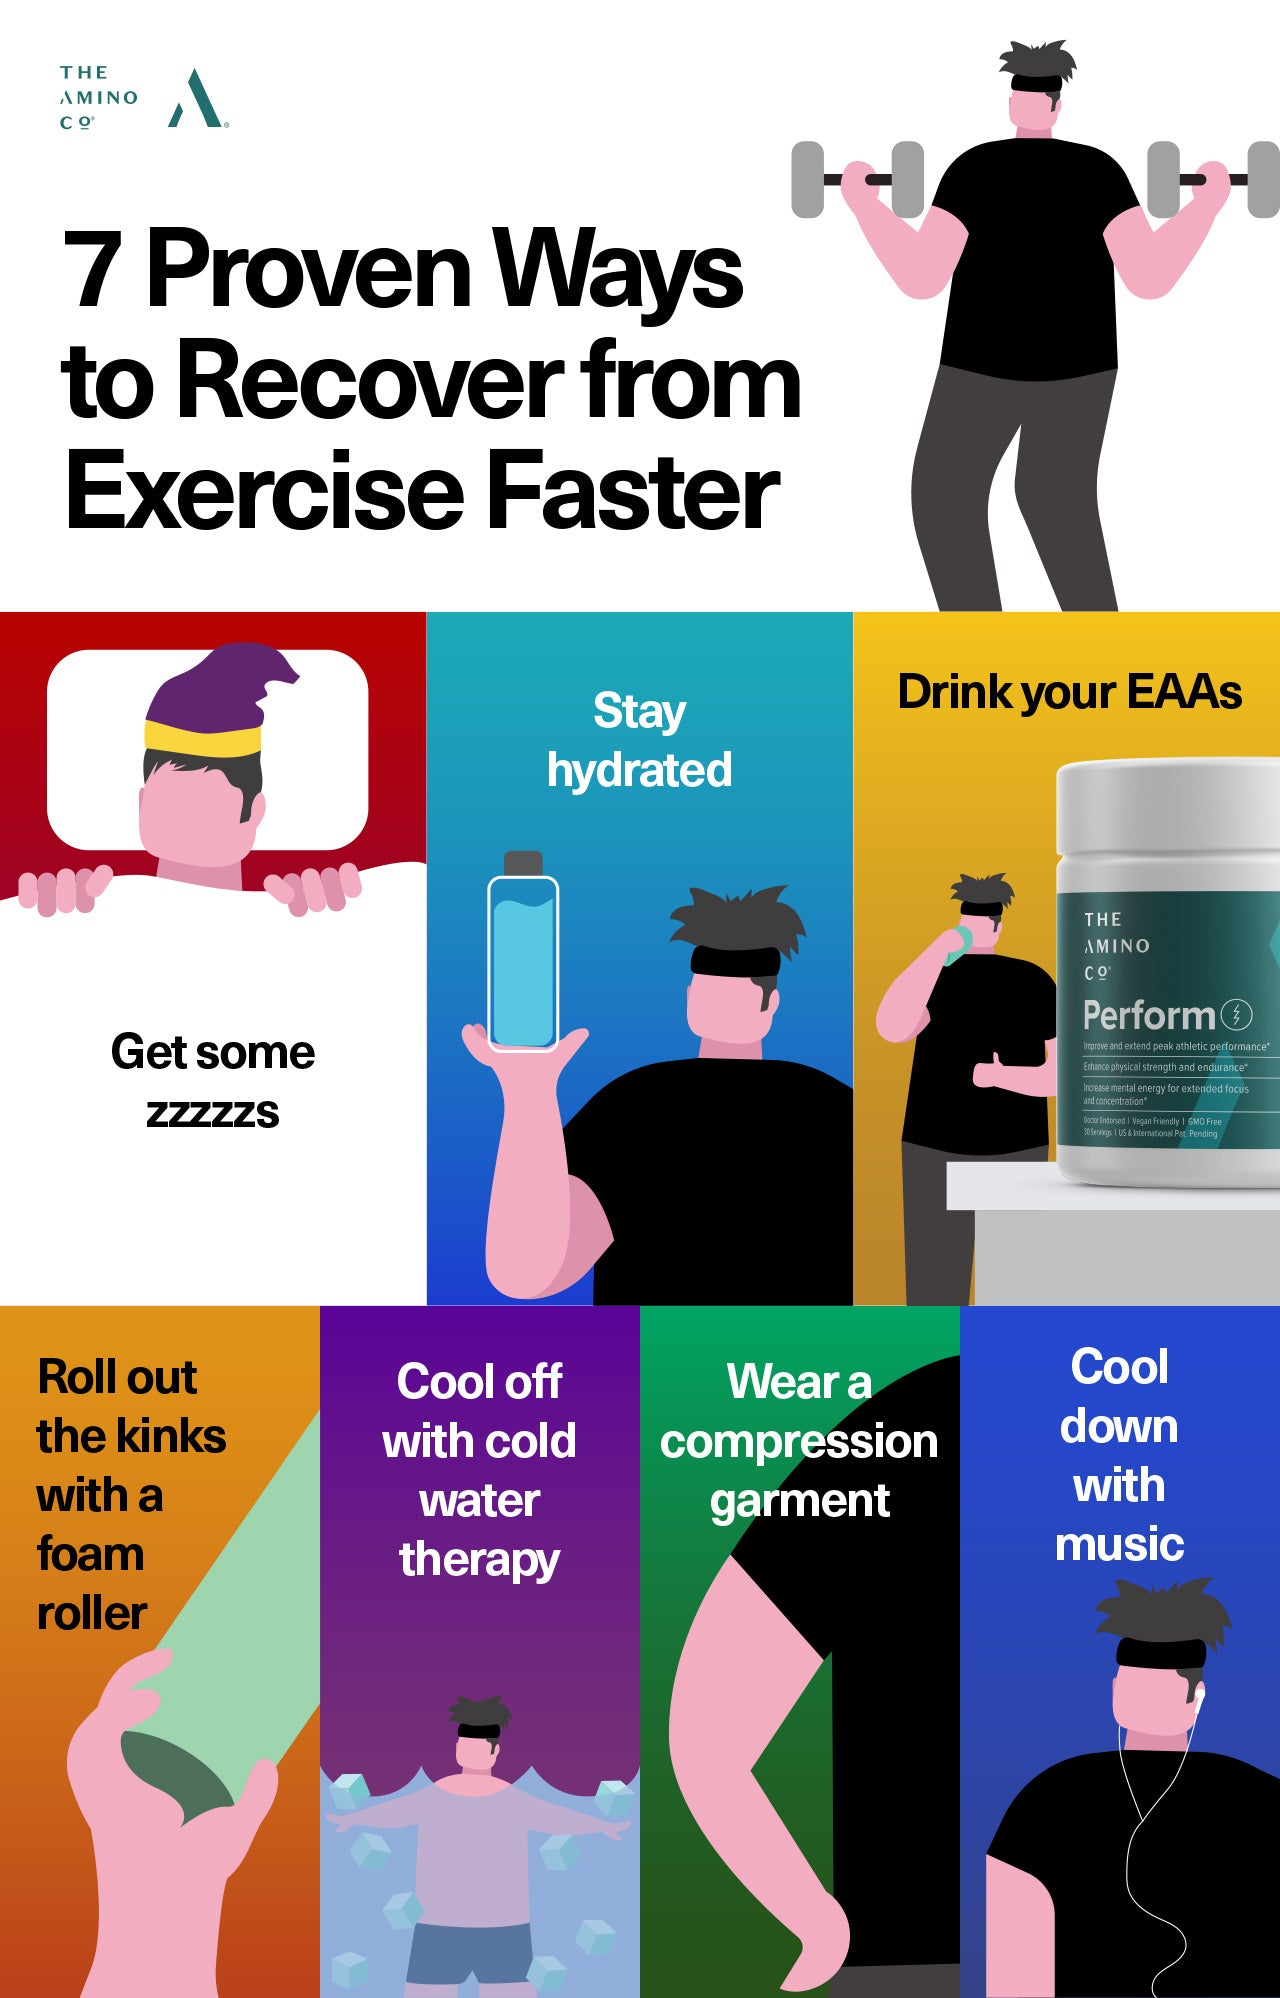 7 Proven Ways to Recover from Exercise Faster